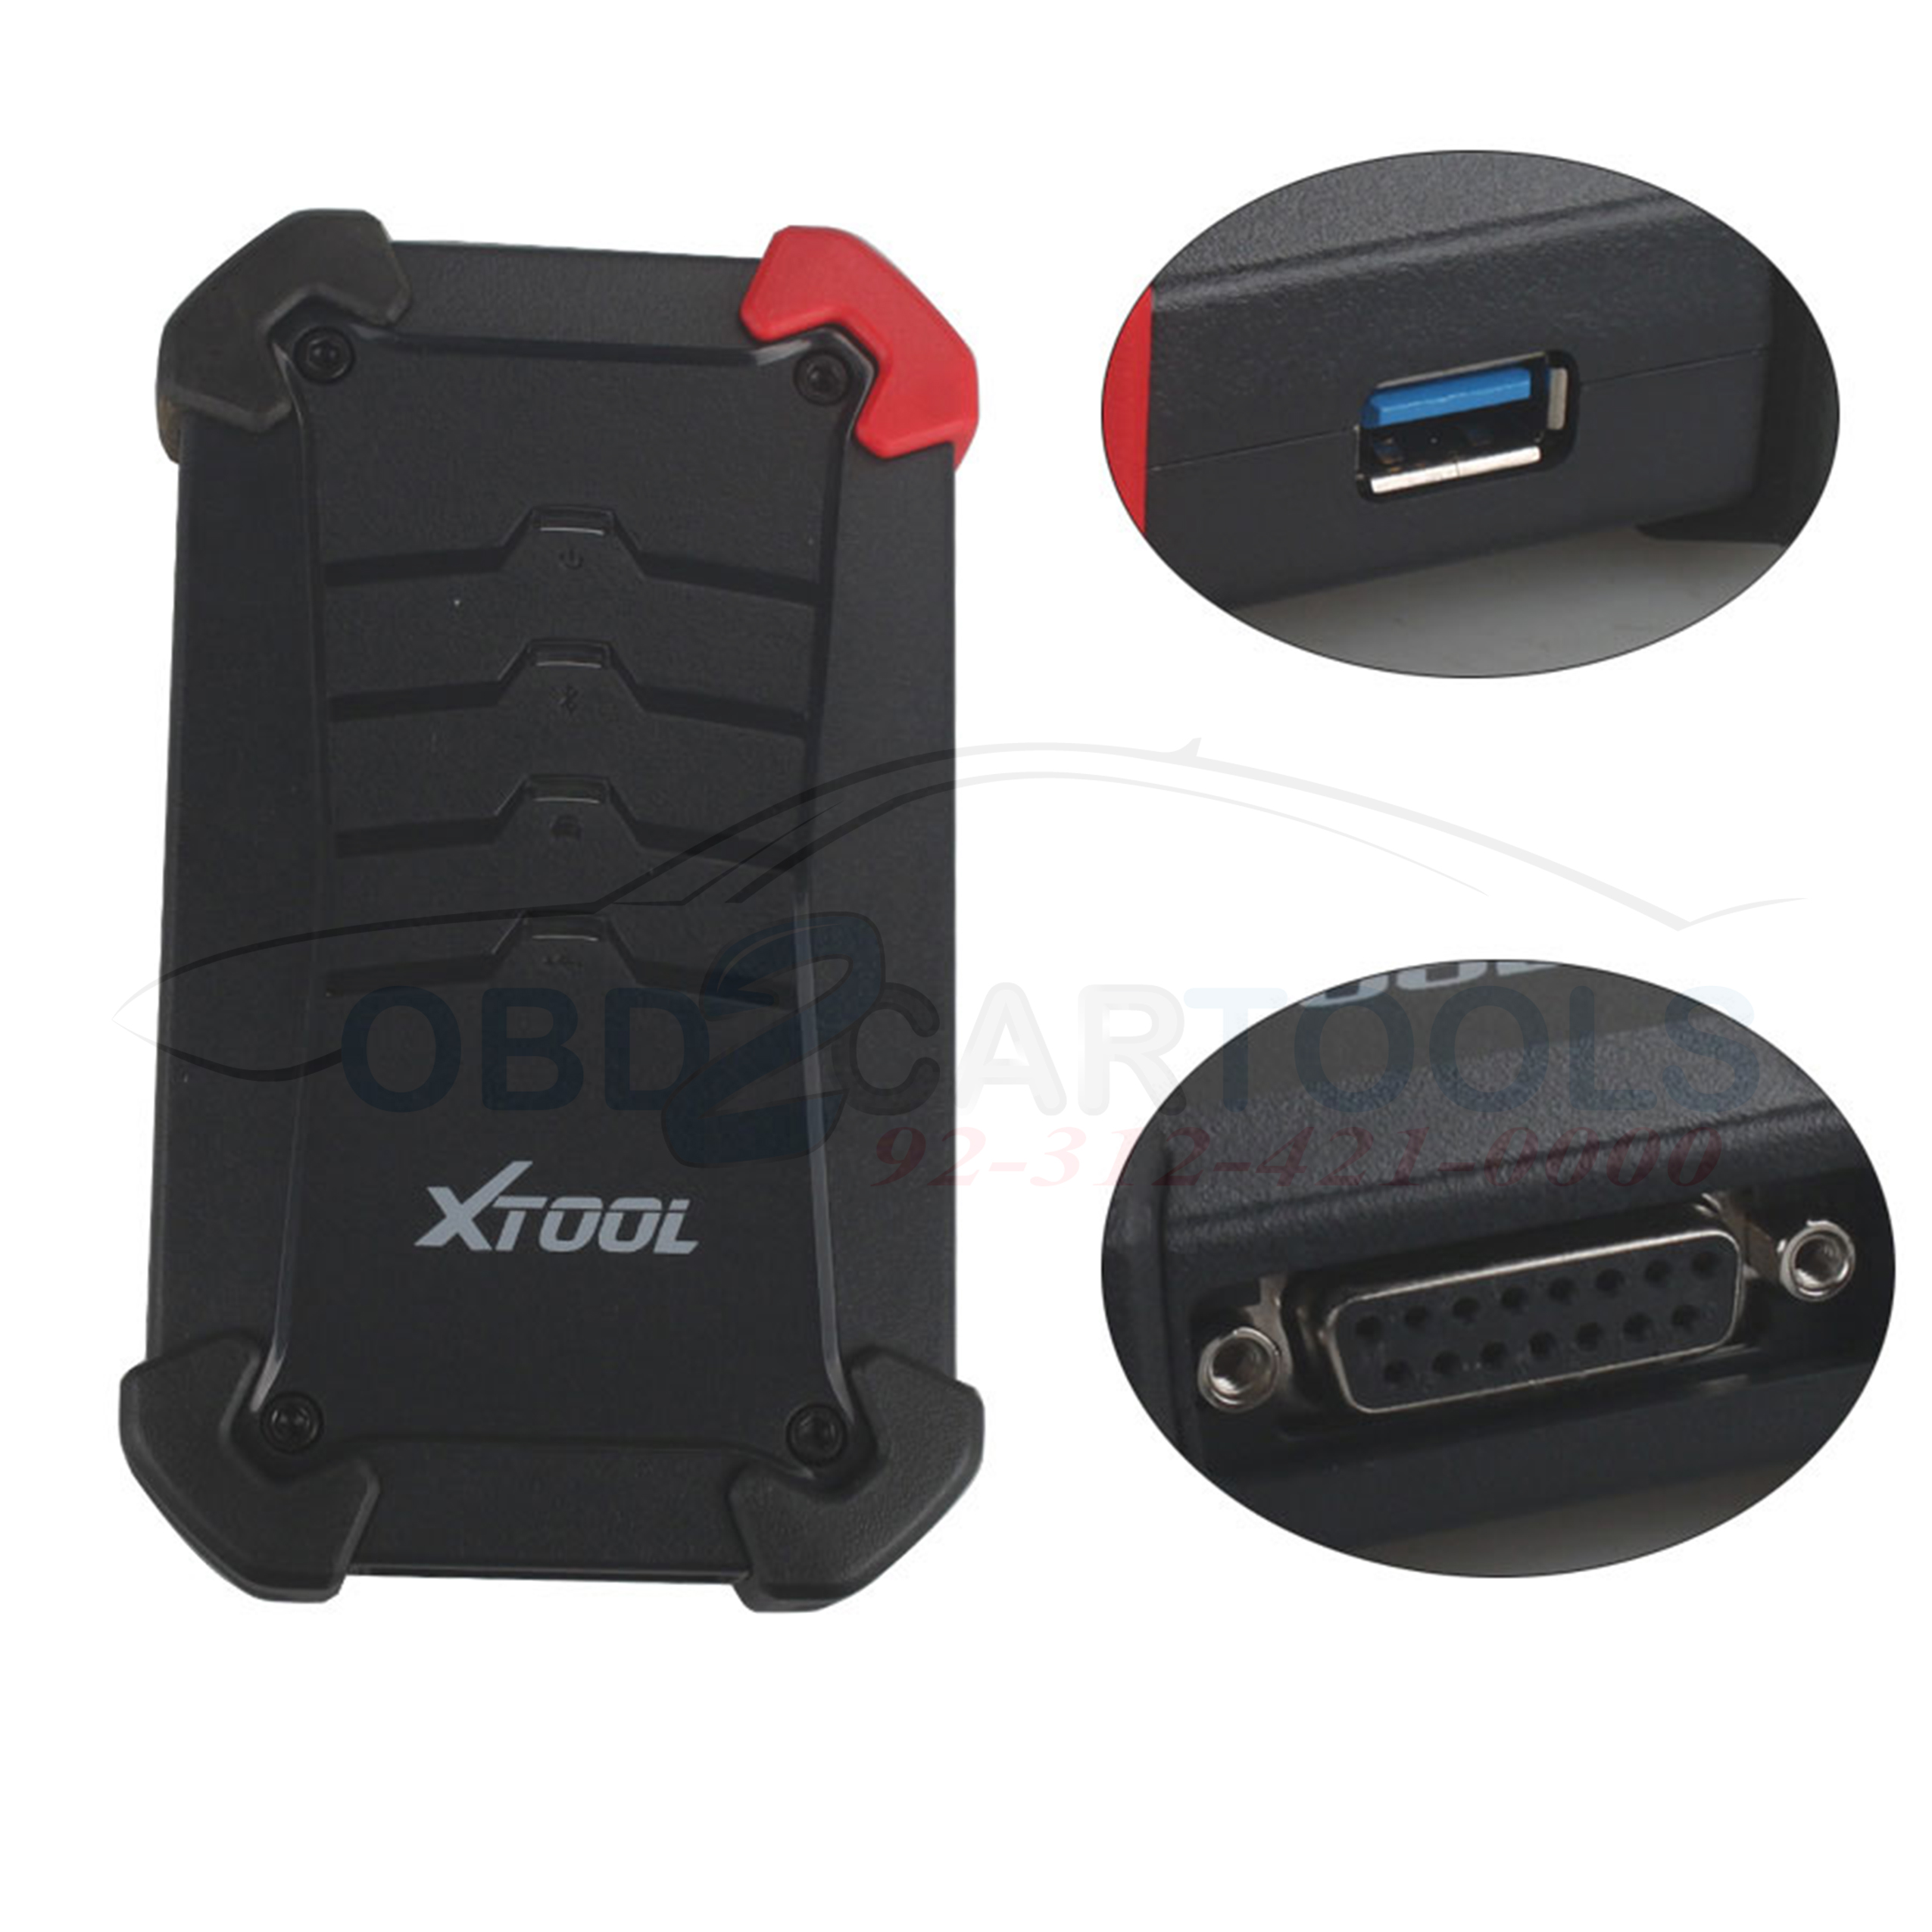 New XTool PS90 Vehicle Diagnostic Tool and Key programmer with WIFI and  Android system